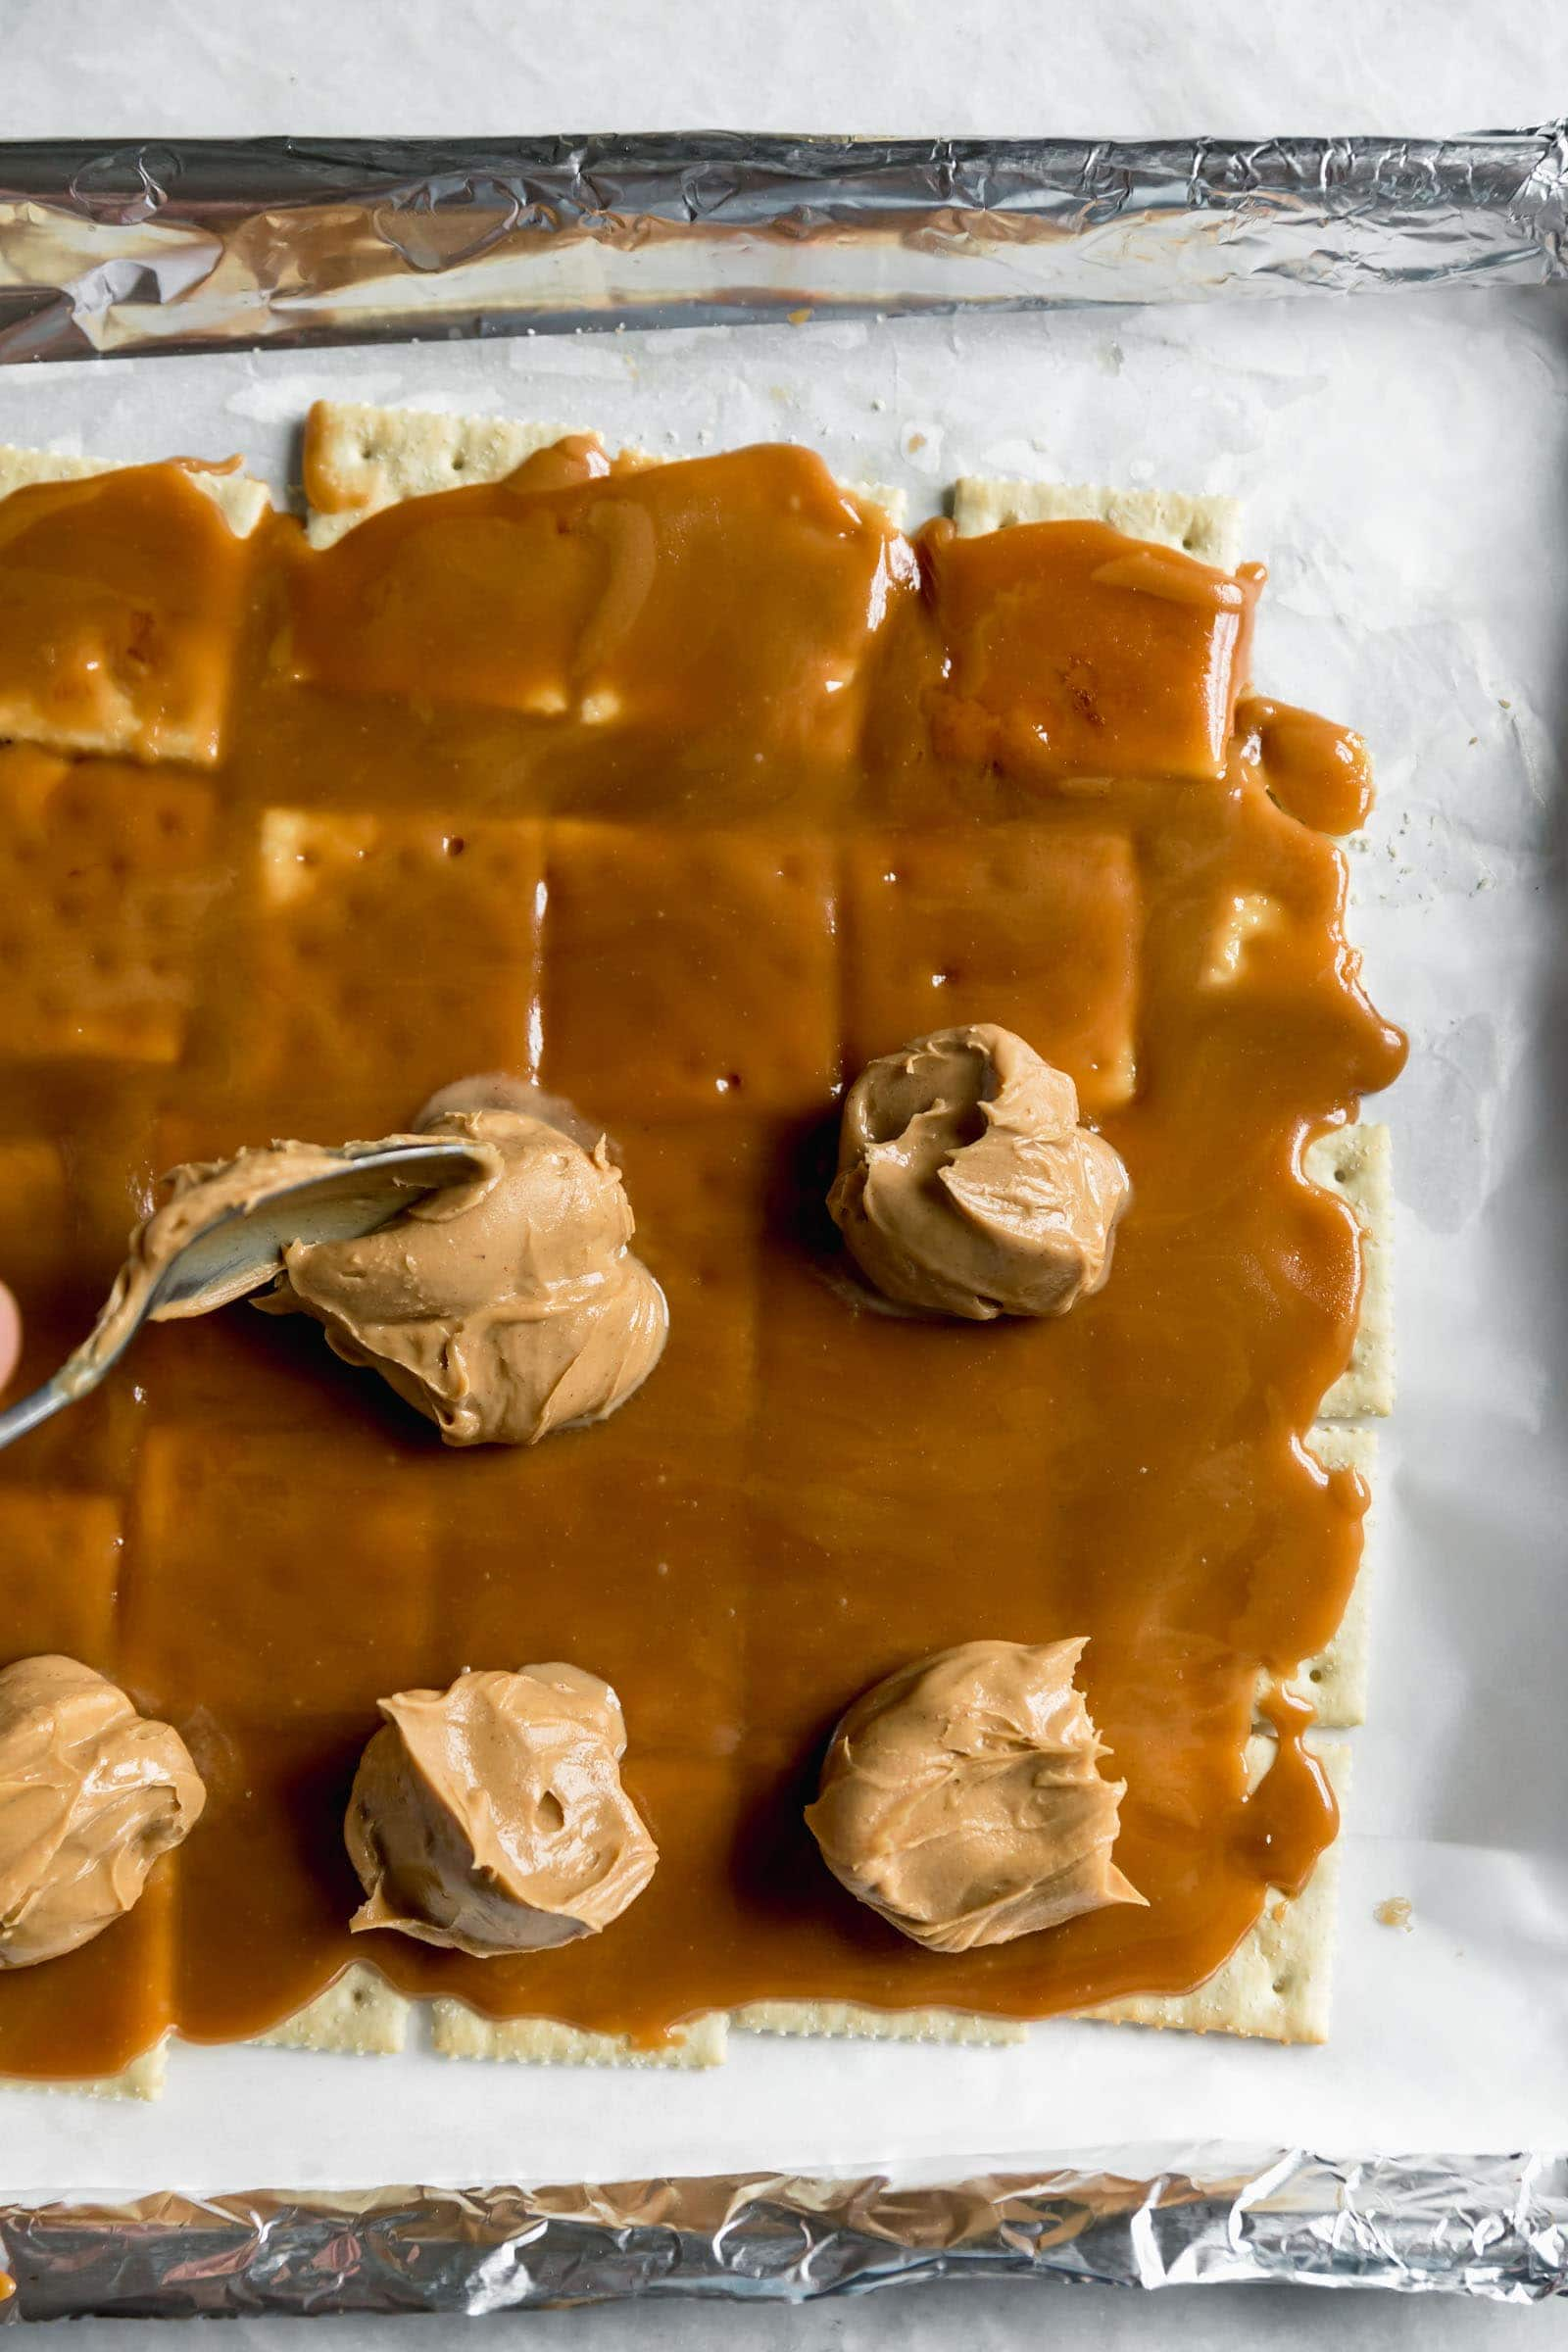 peanut butter dropped by spoonful on saltines